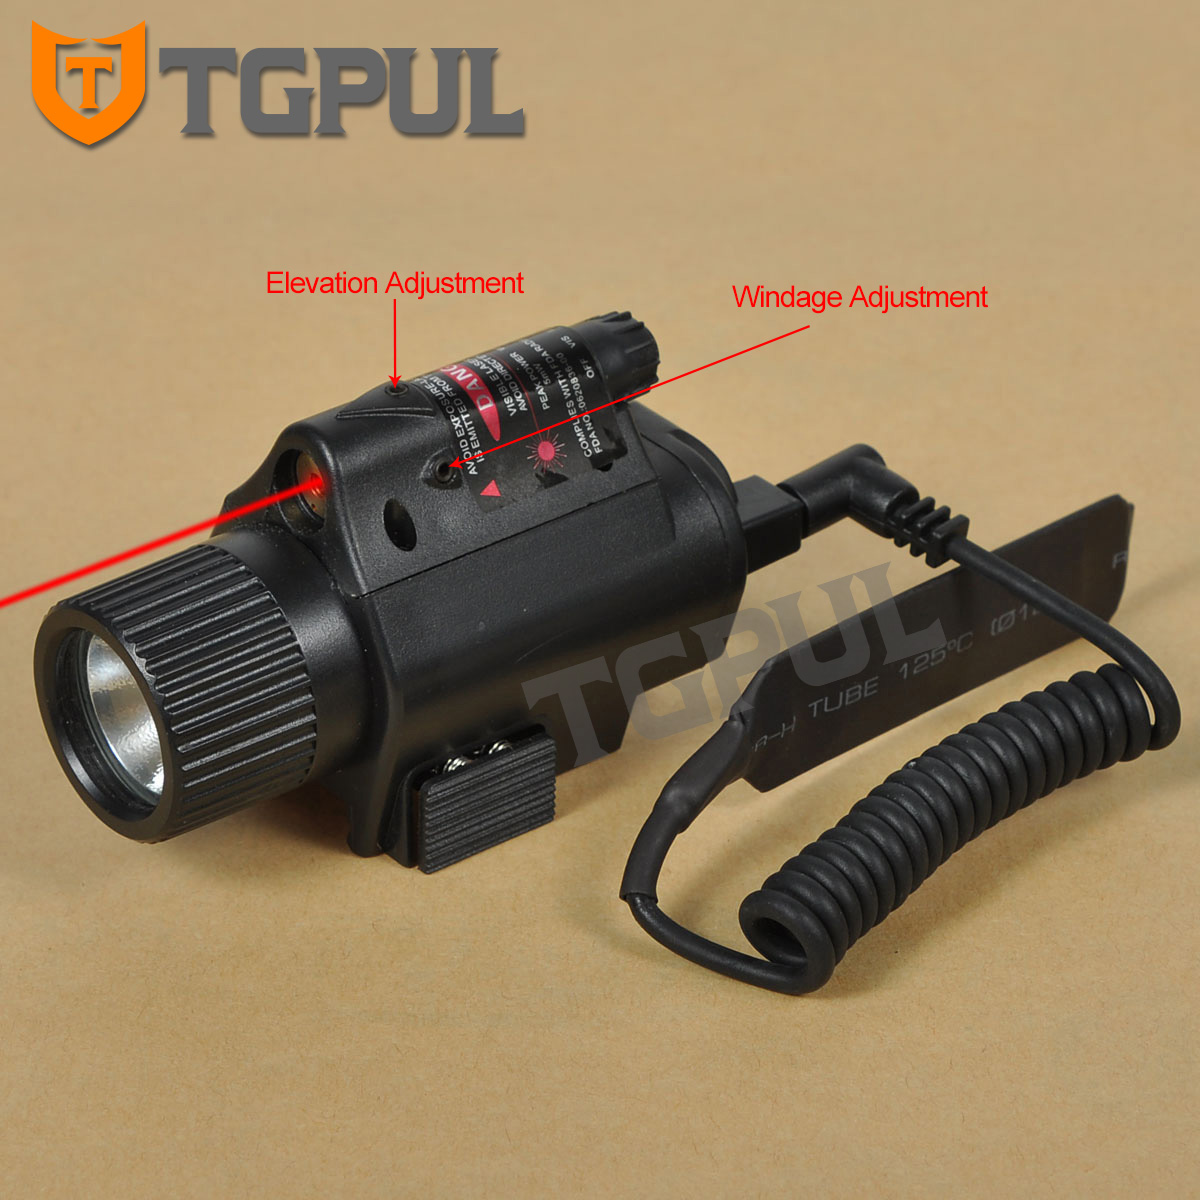 TGPUL Tactical Combo 2 In 1 Tactical LED Flashlight Red Laser Sight Combo For 20MM Rail Pistol Mini Glock Pistol Gun Light